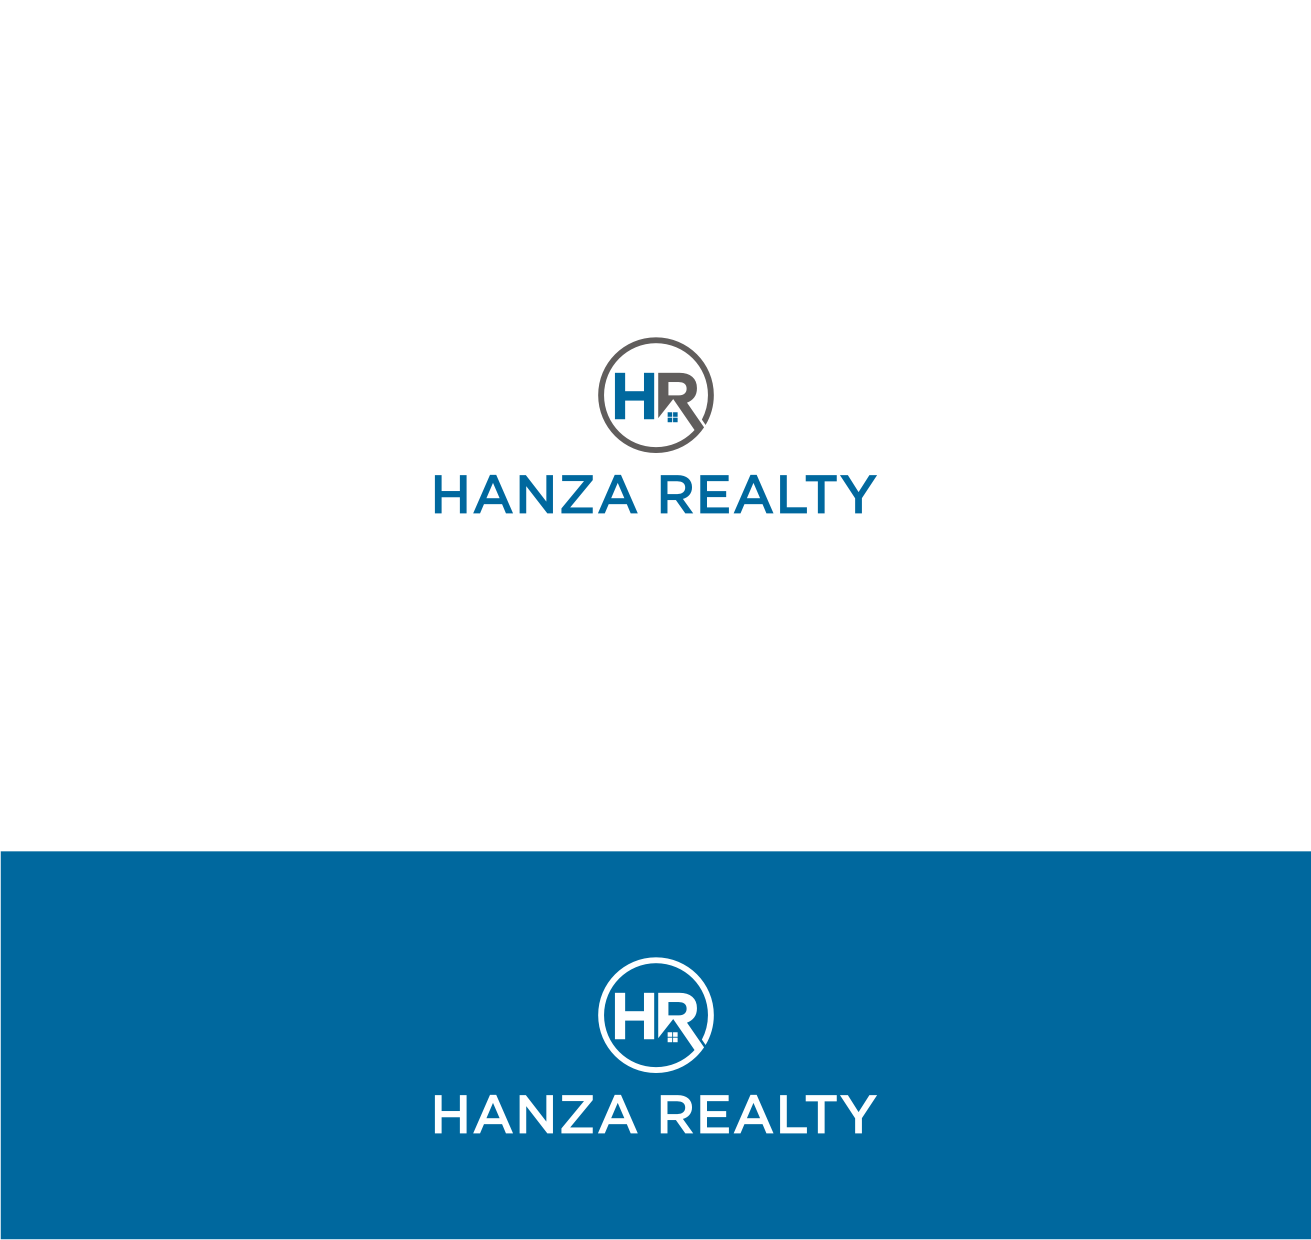 Logo Design by Sigitumarali Sigit - Entry No. 287 in the Logo Design Contest Logo Design for Hanza Realty.